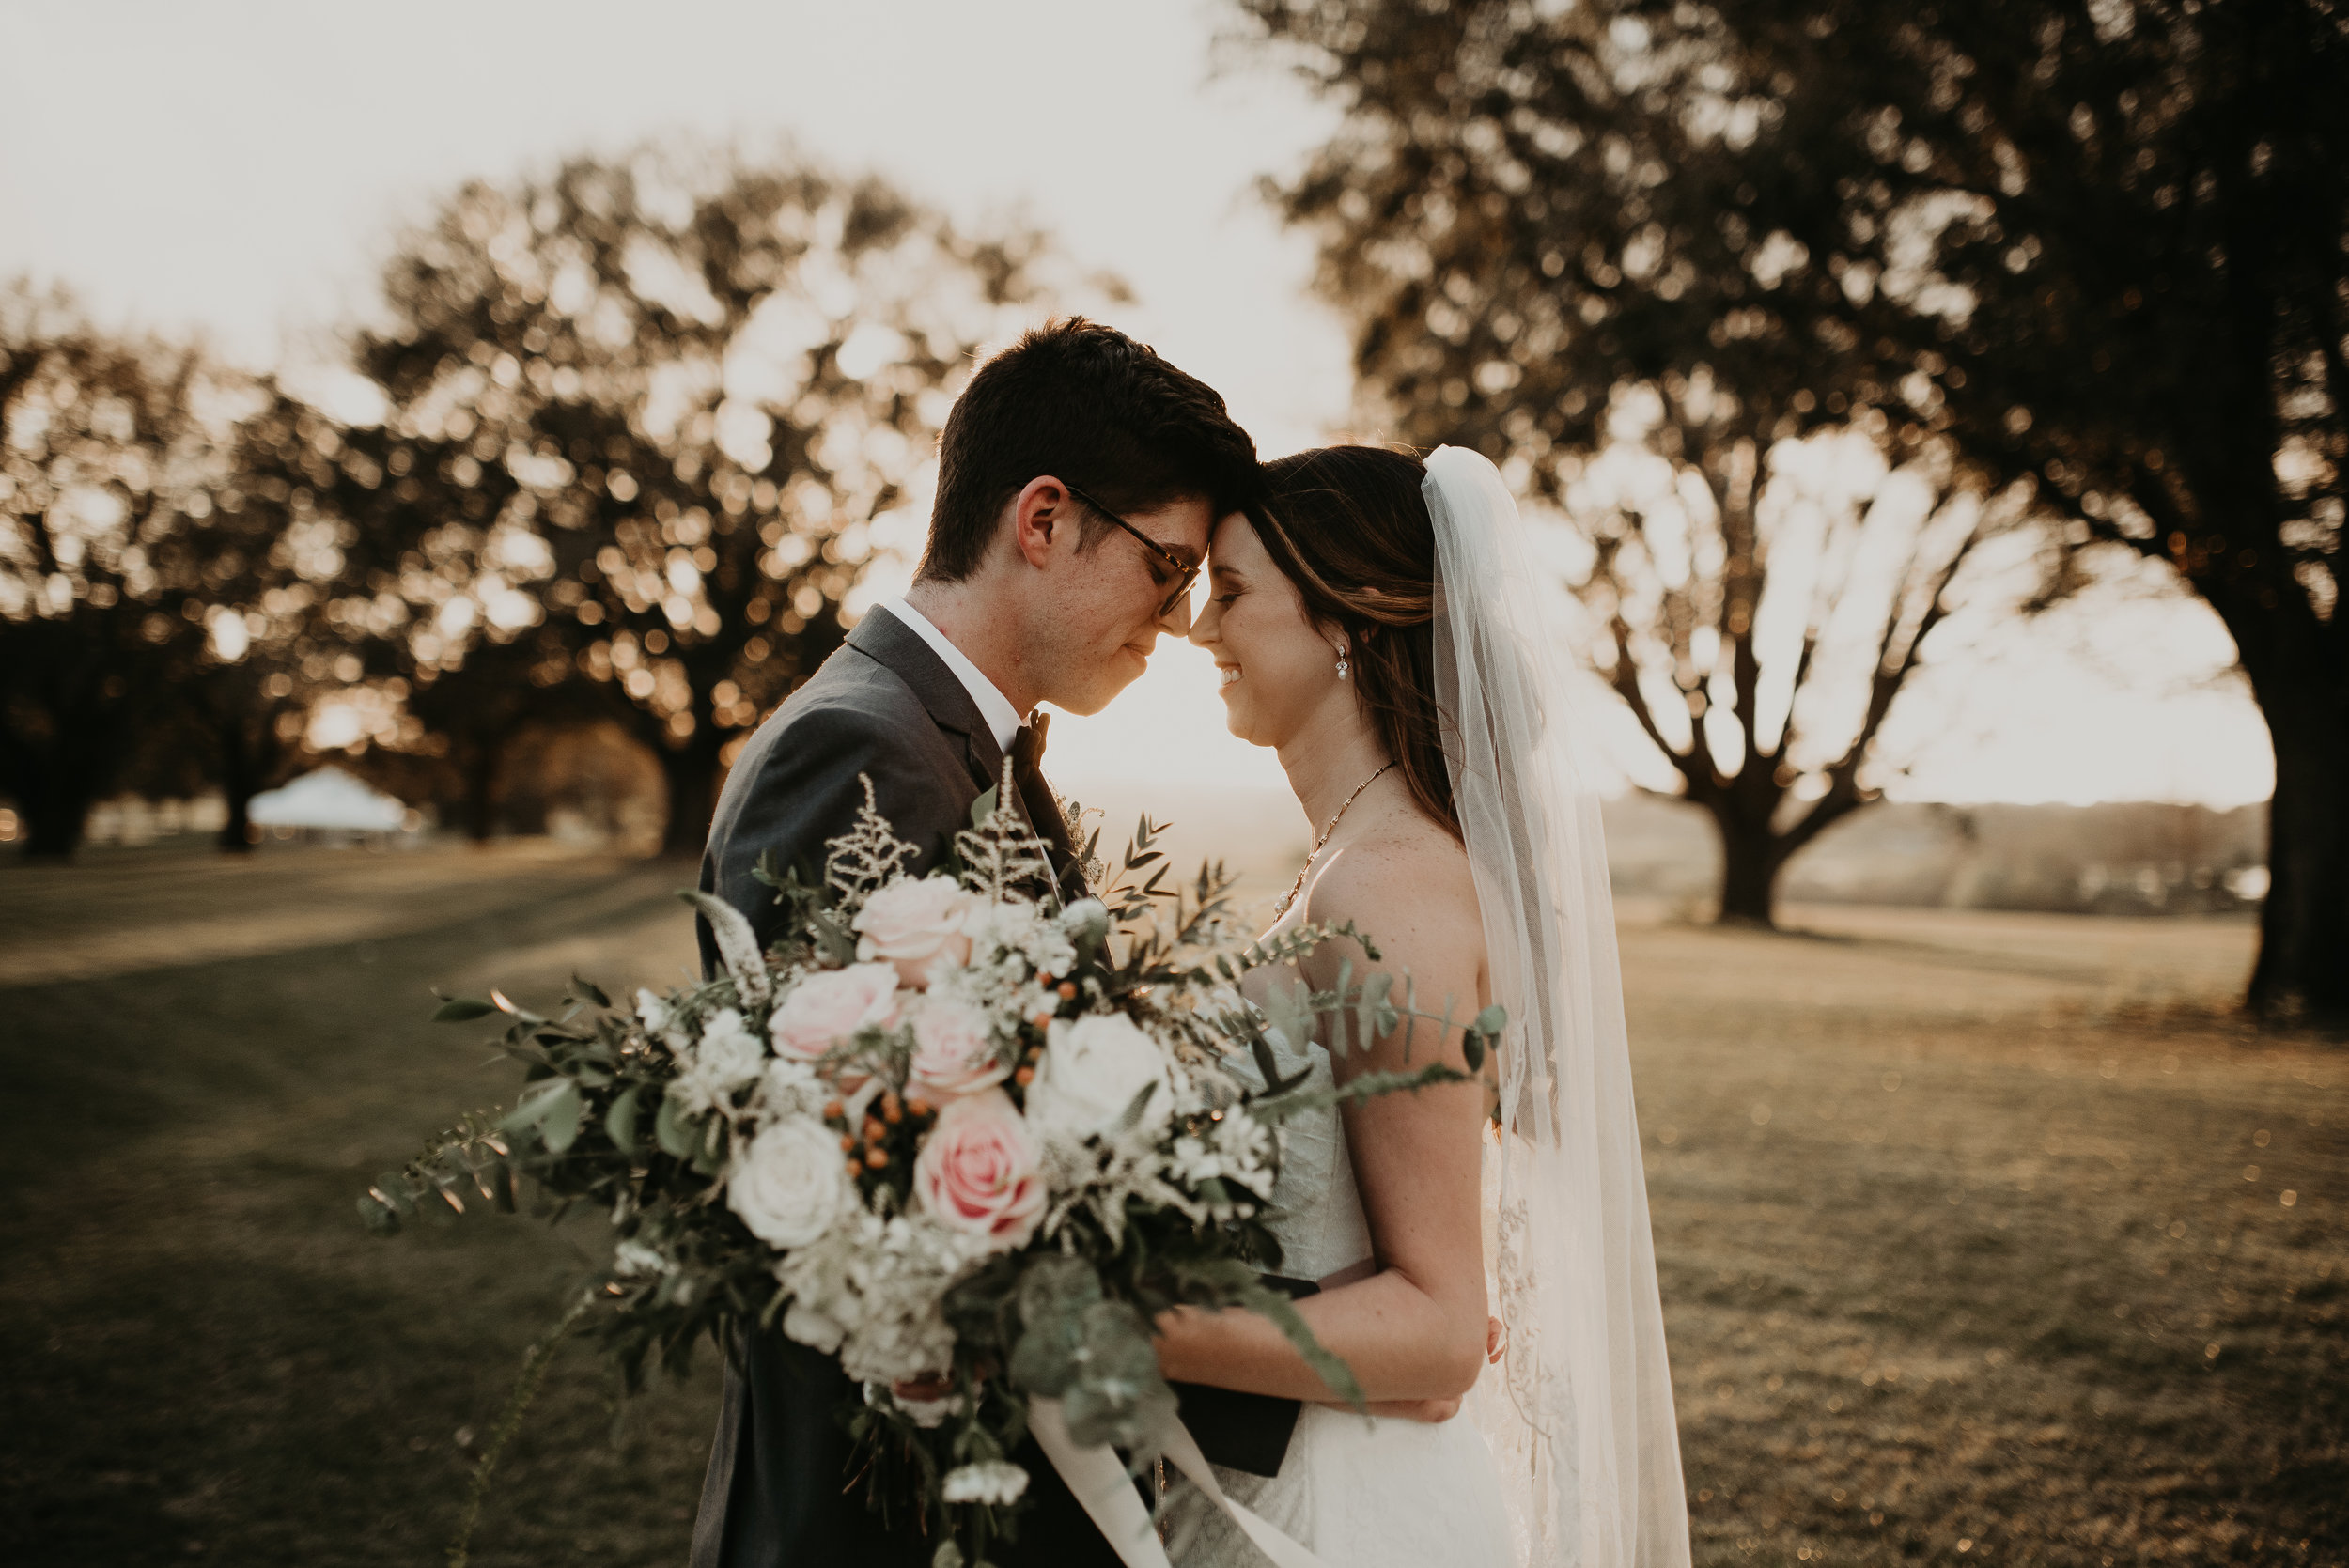 Bride and groom intimate during golden hour at MetroWest Golf Club in Orlando, FL